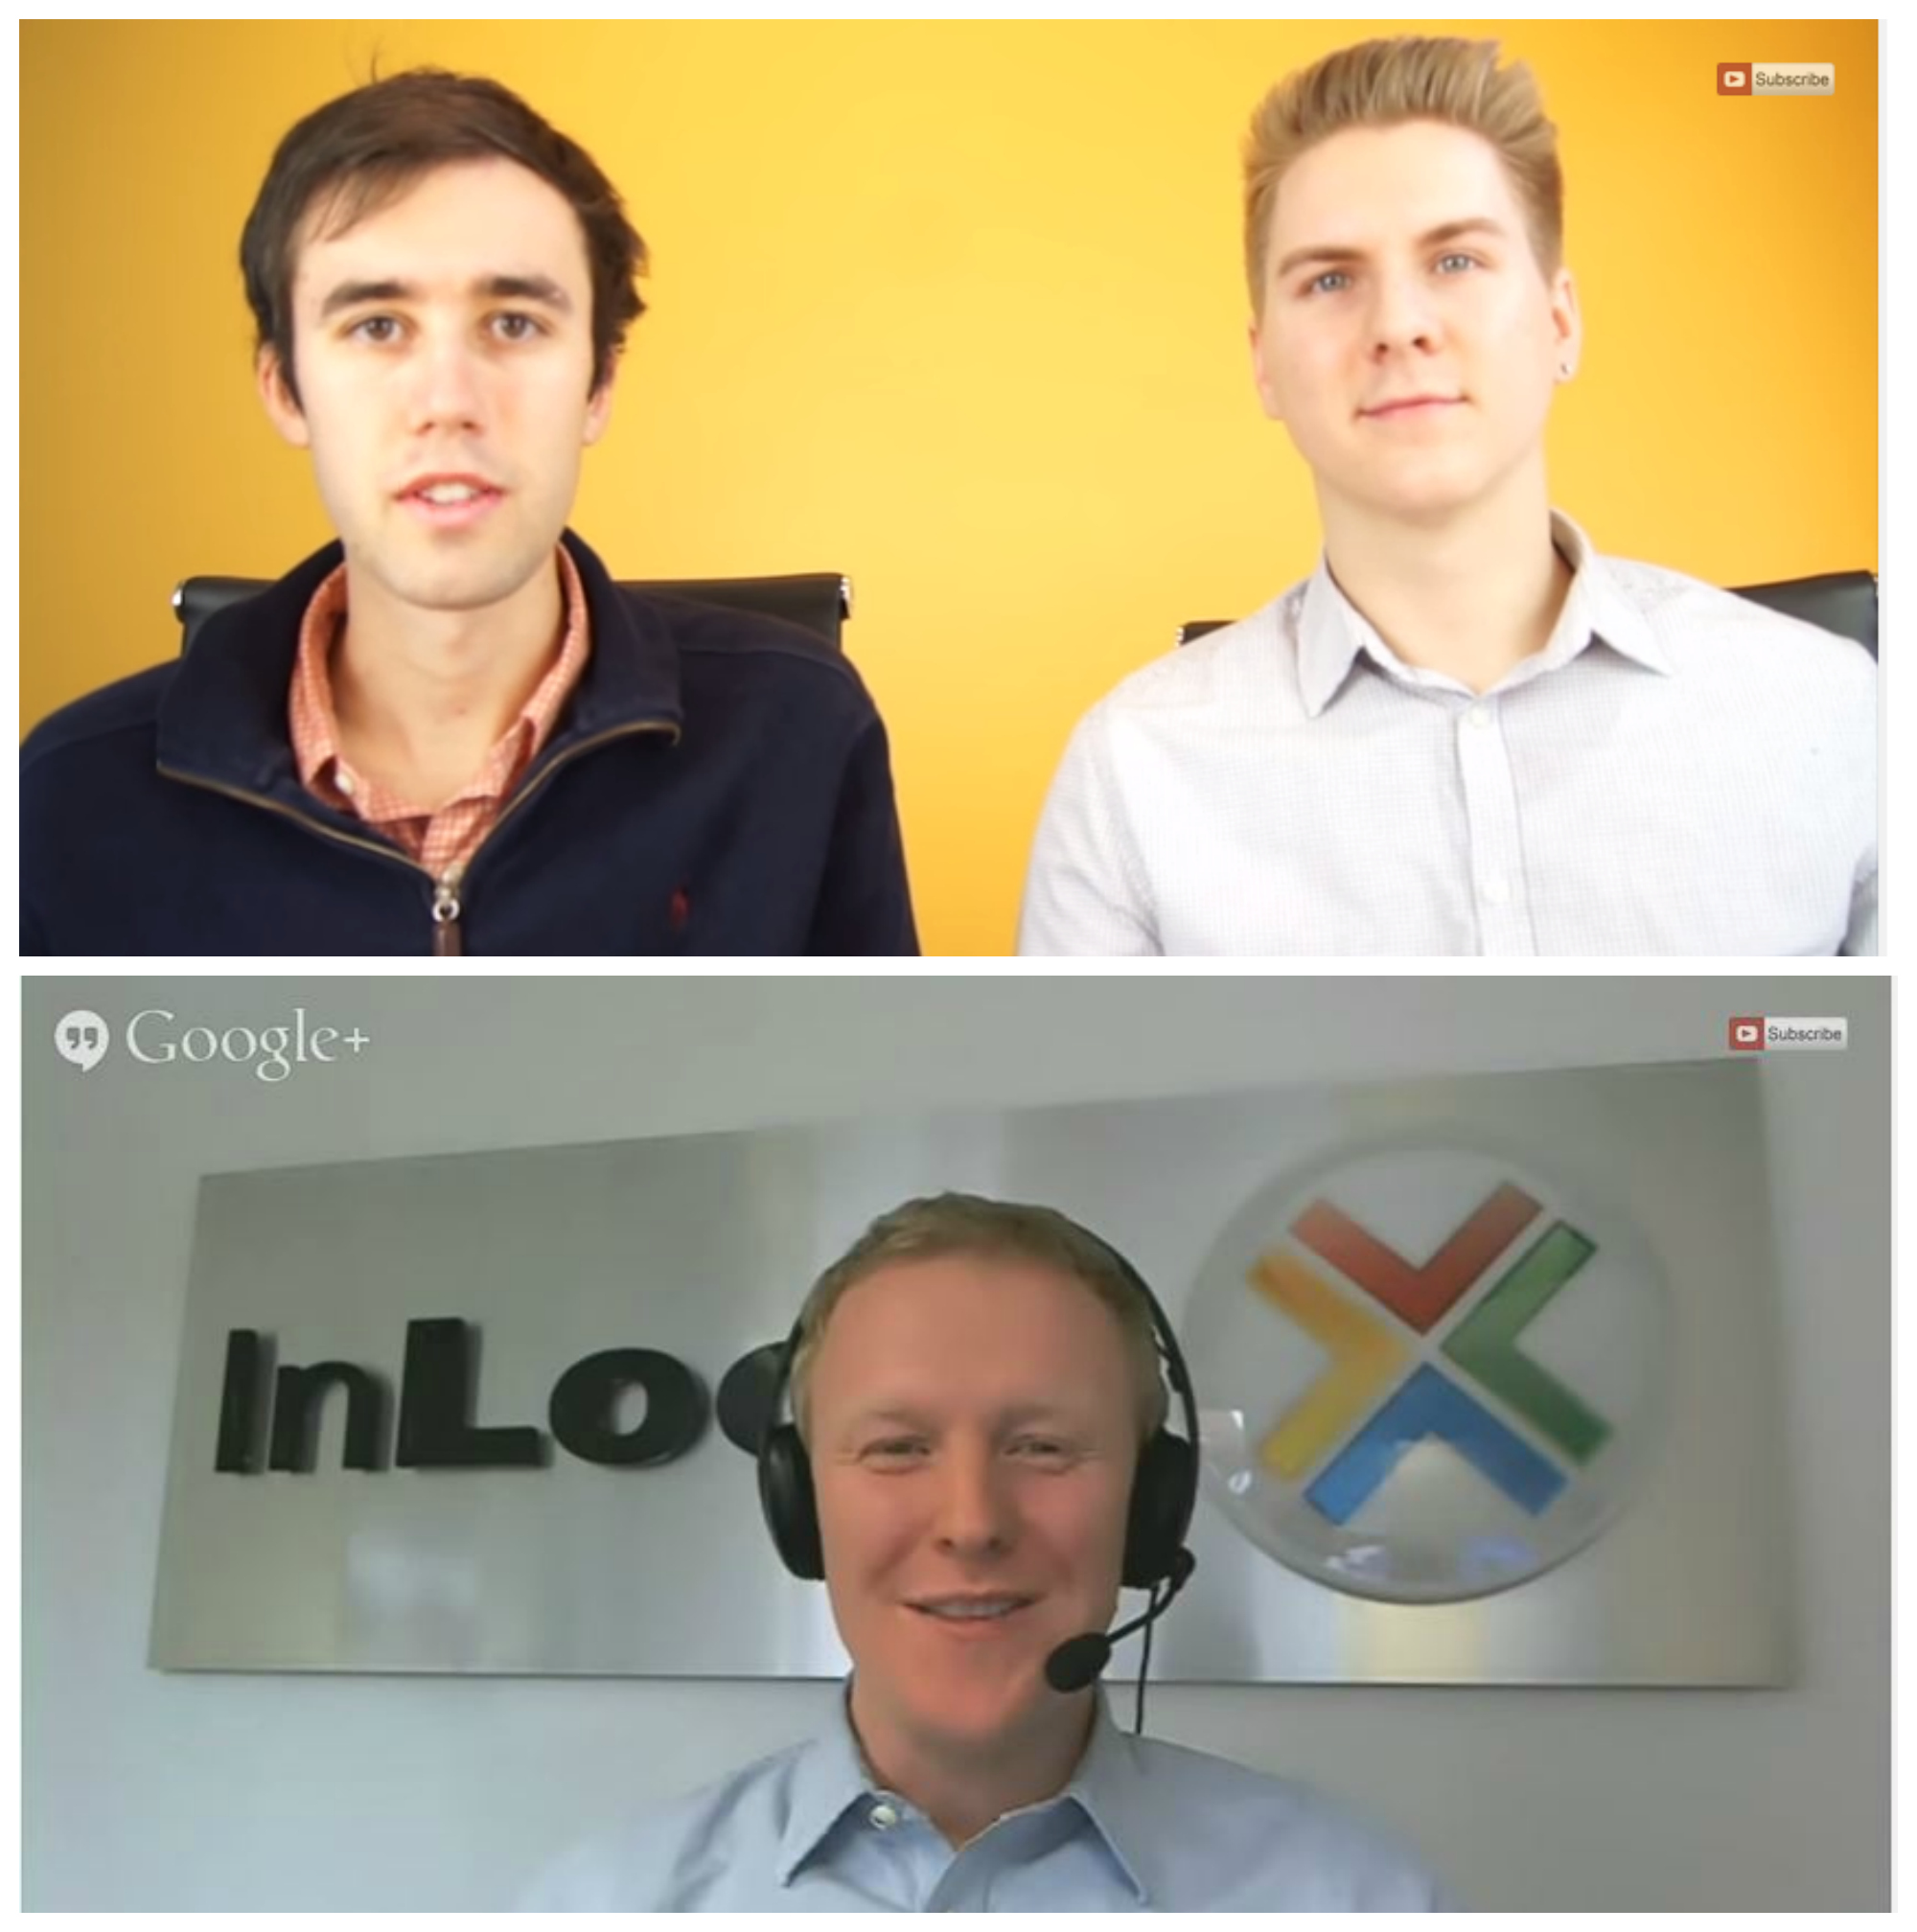 Product Spotlight: InLoox Project Management Software - Technology Advice Interviews Andreas Tremel